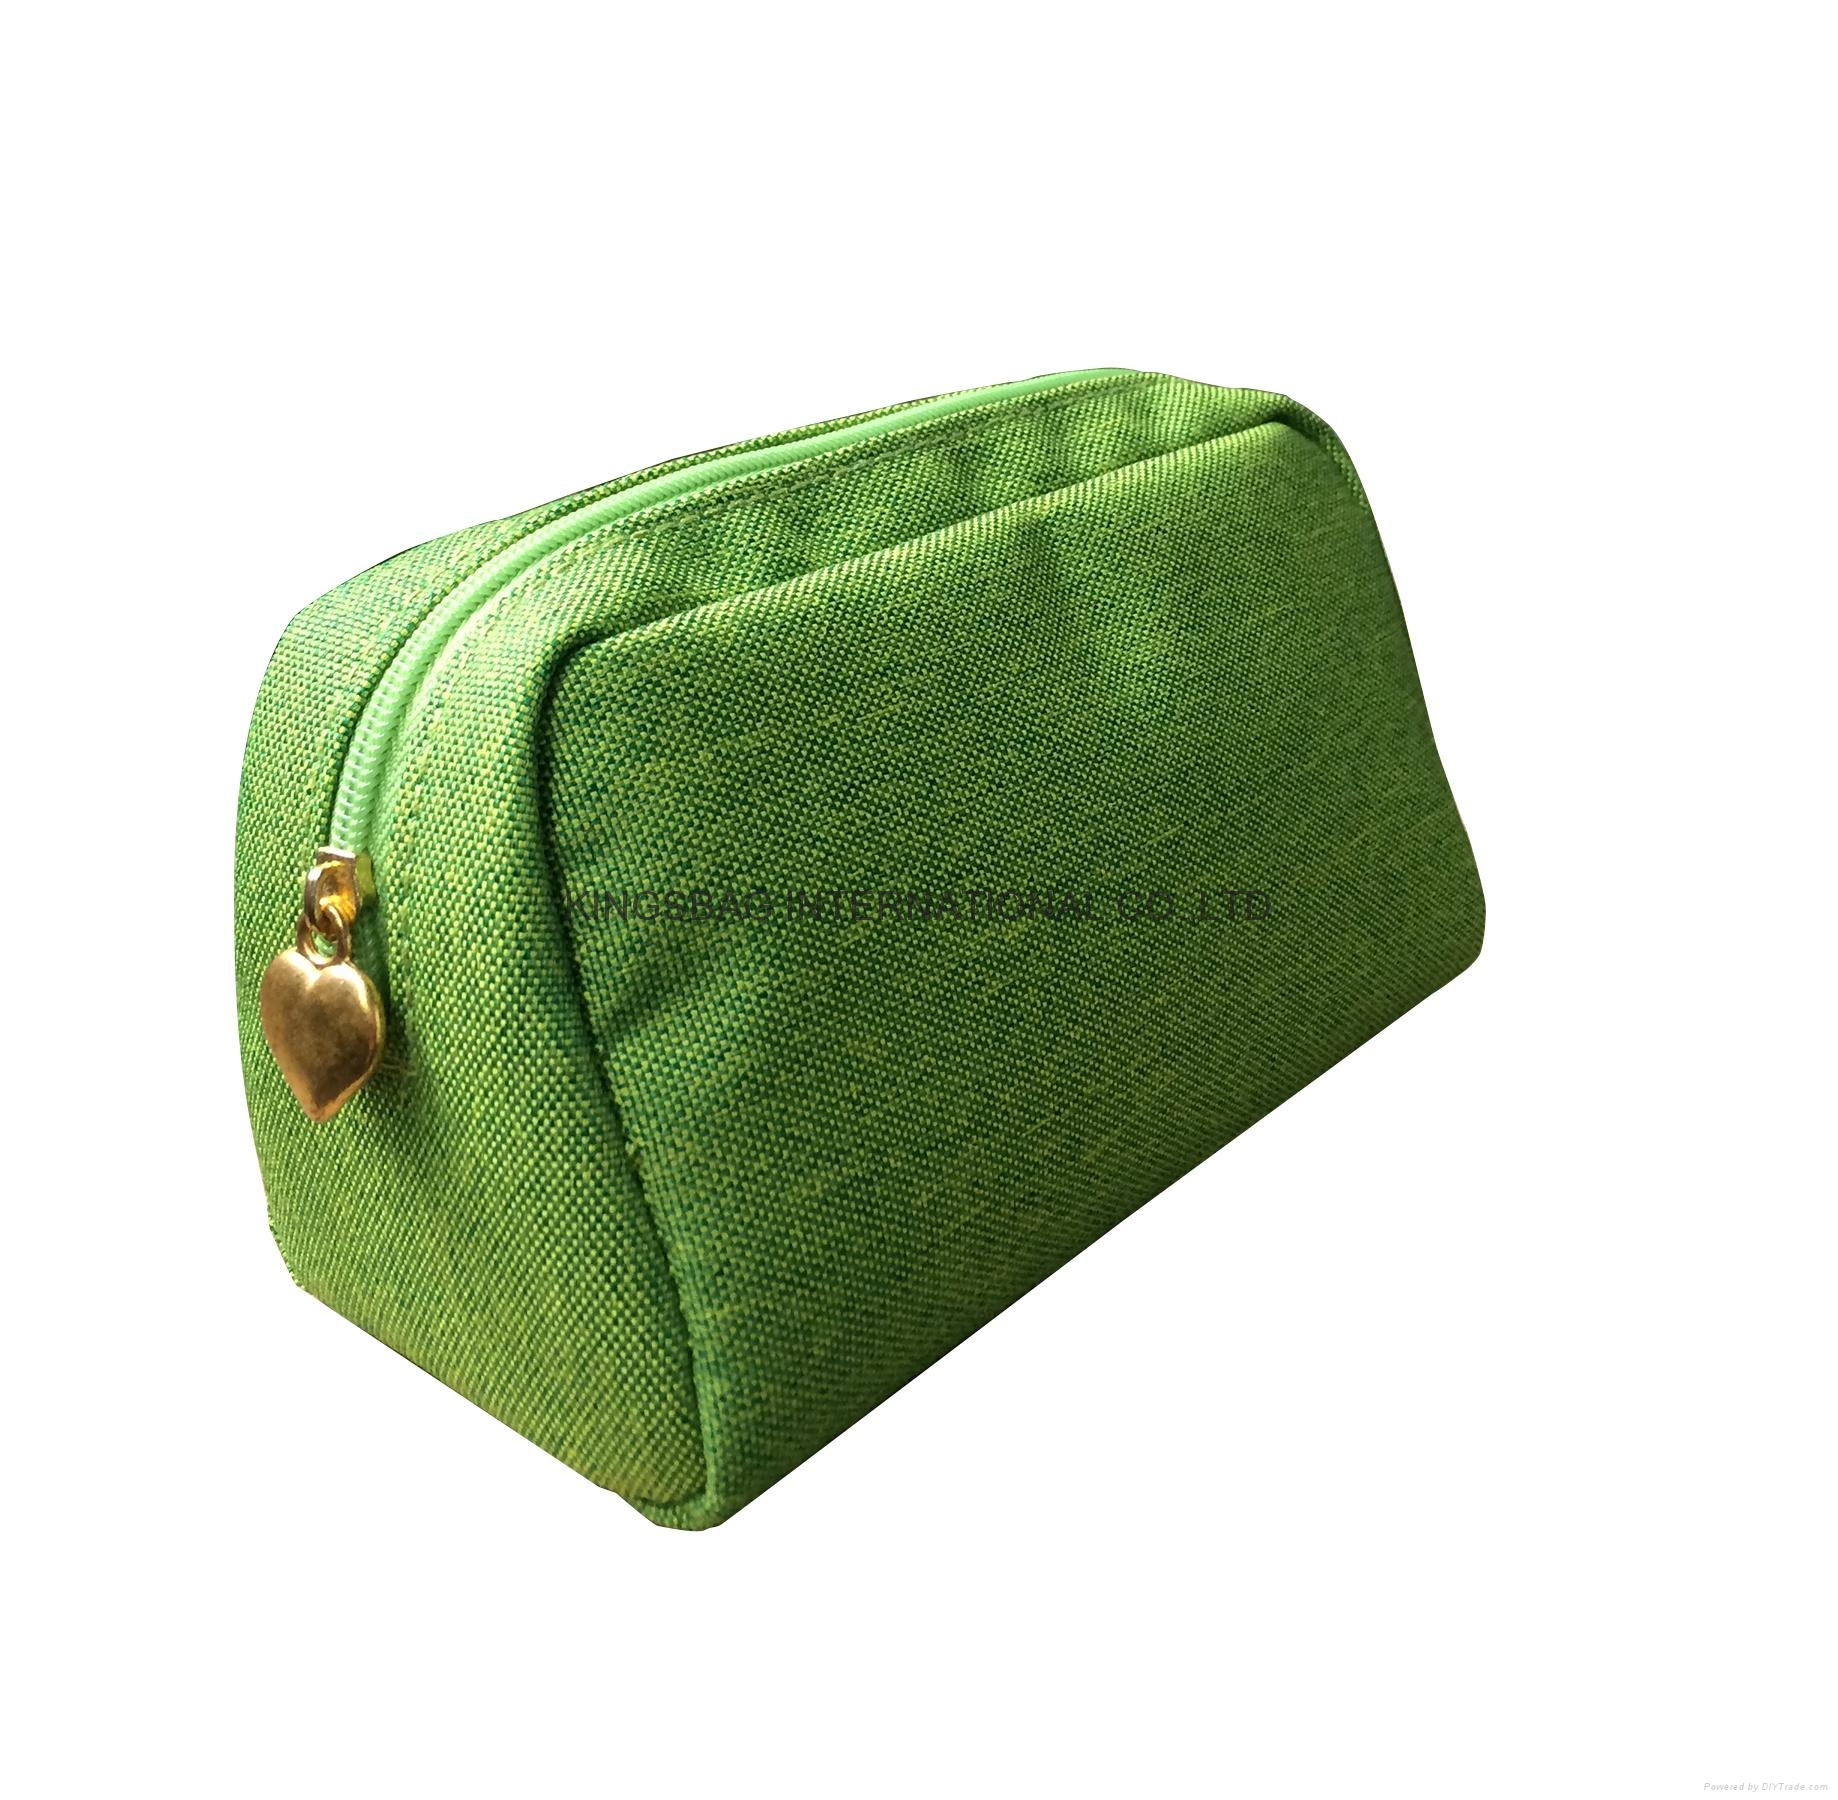 02ac93090850 Polyester small lady makeup promotional pouch bag green colour 1 ...